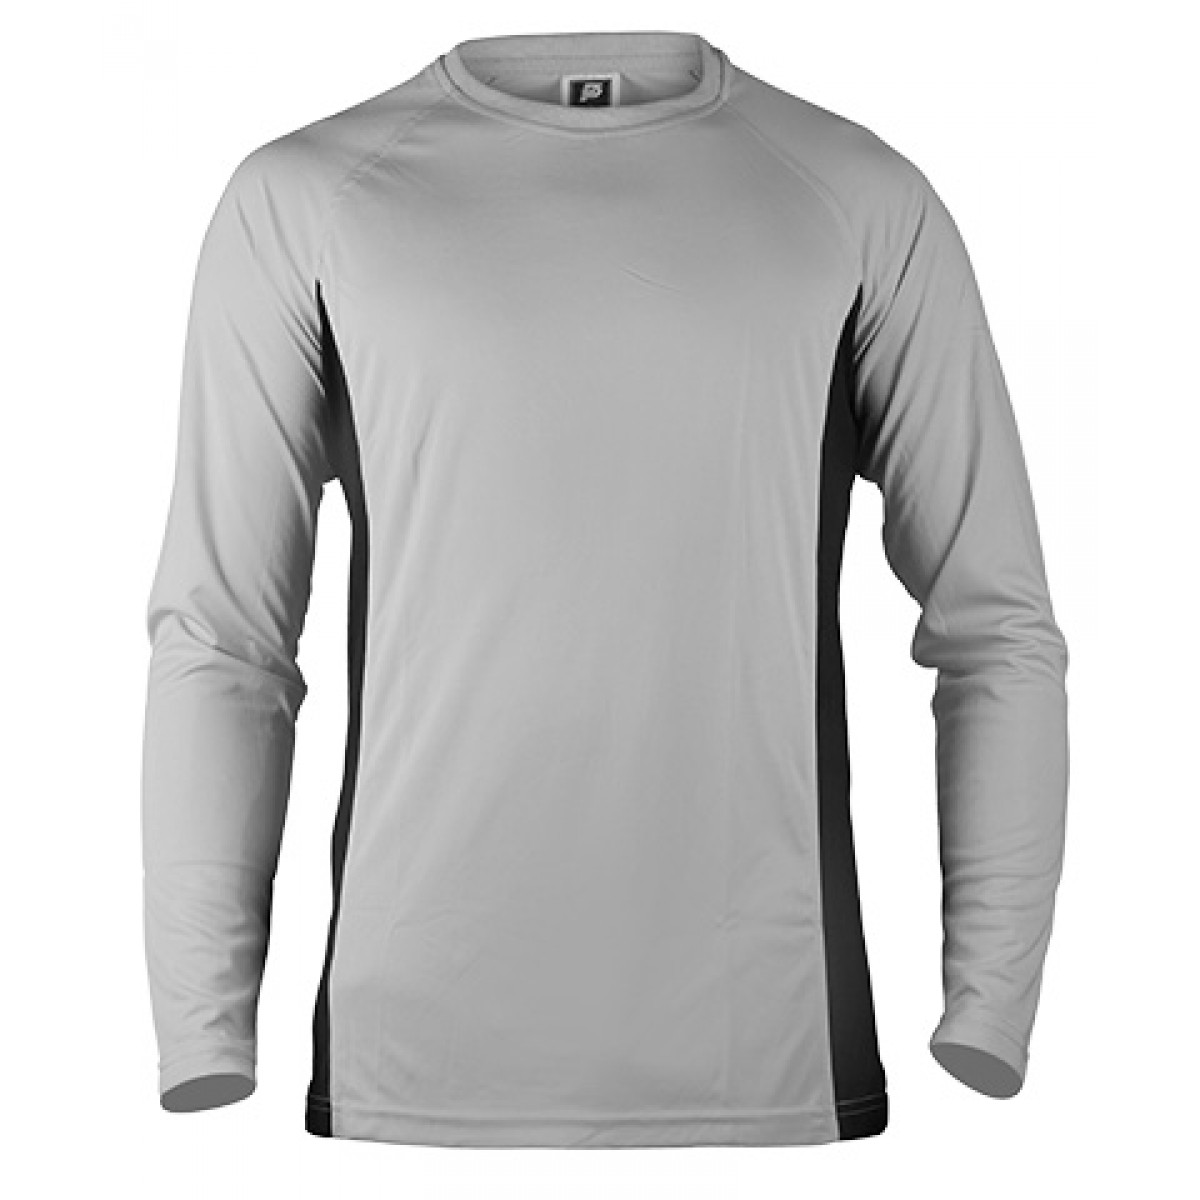 Long Sleeves Performance With Side Insert-Gray/Black-XL